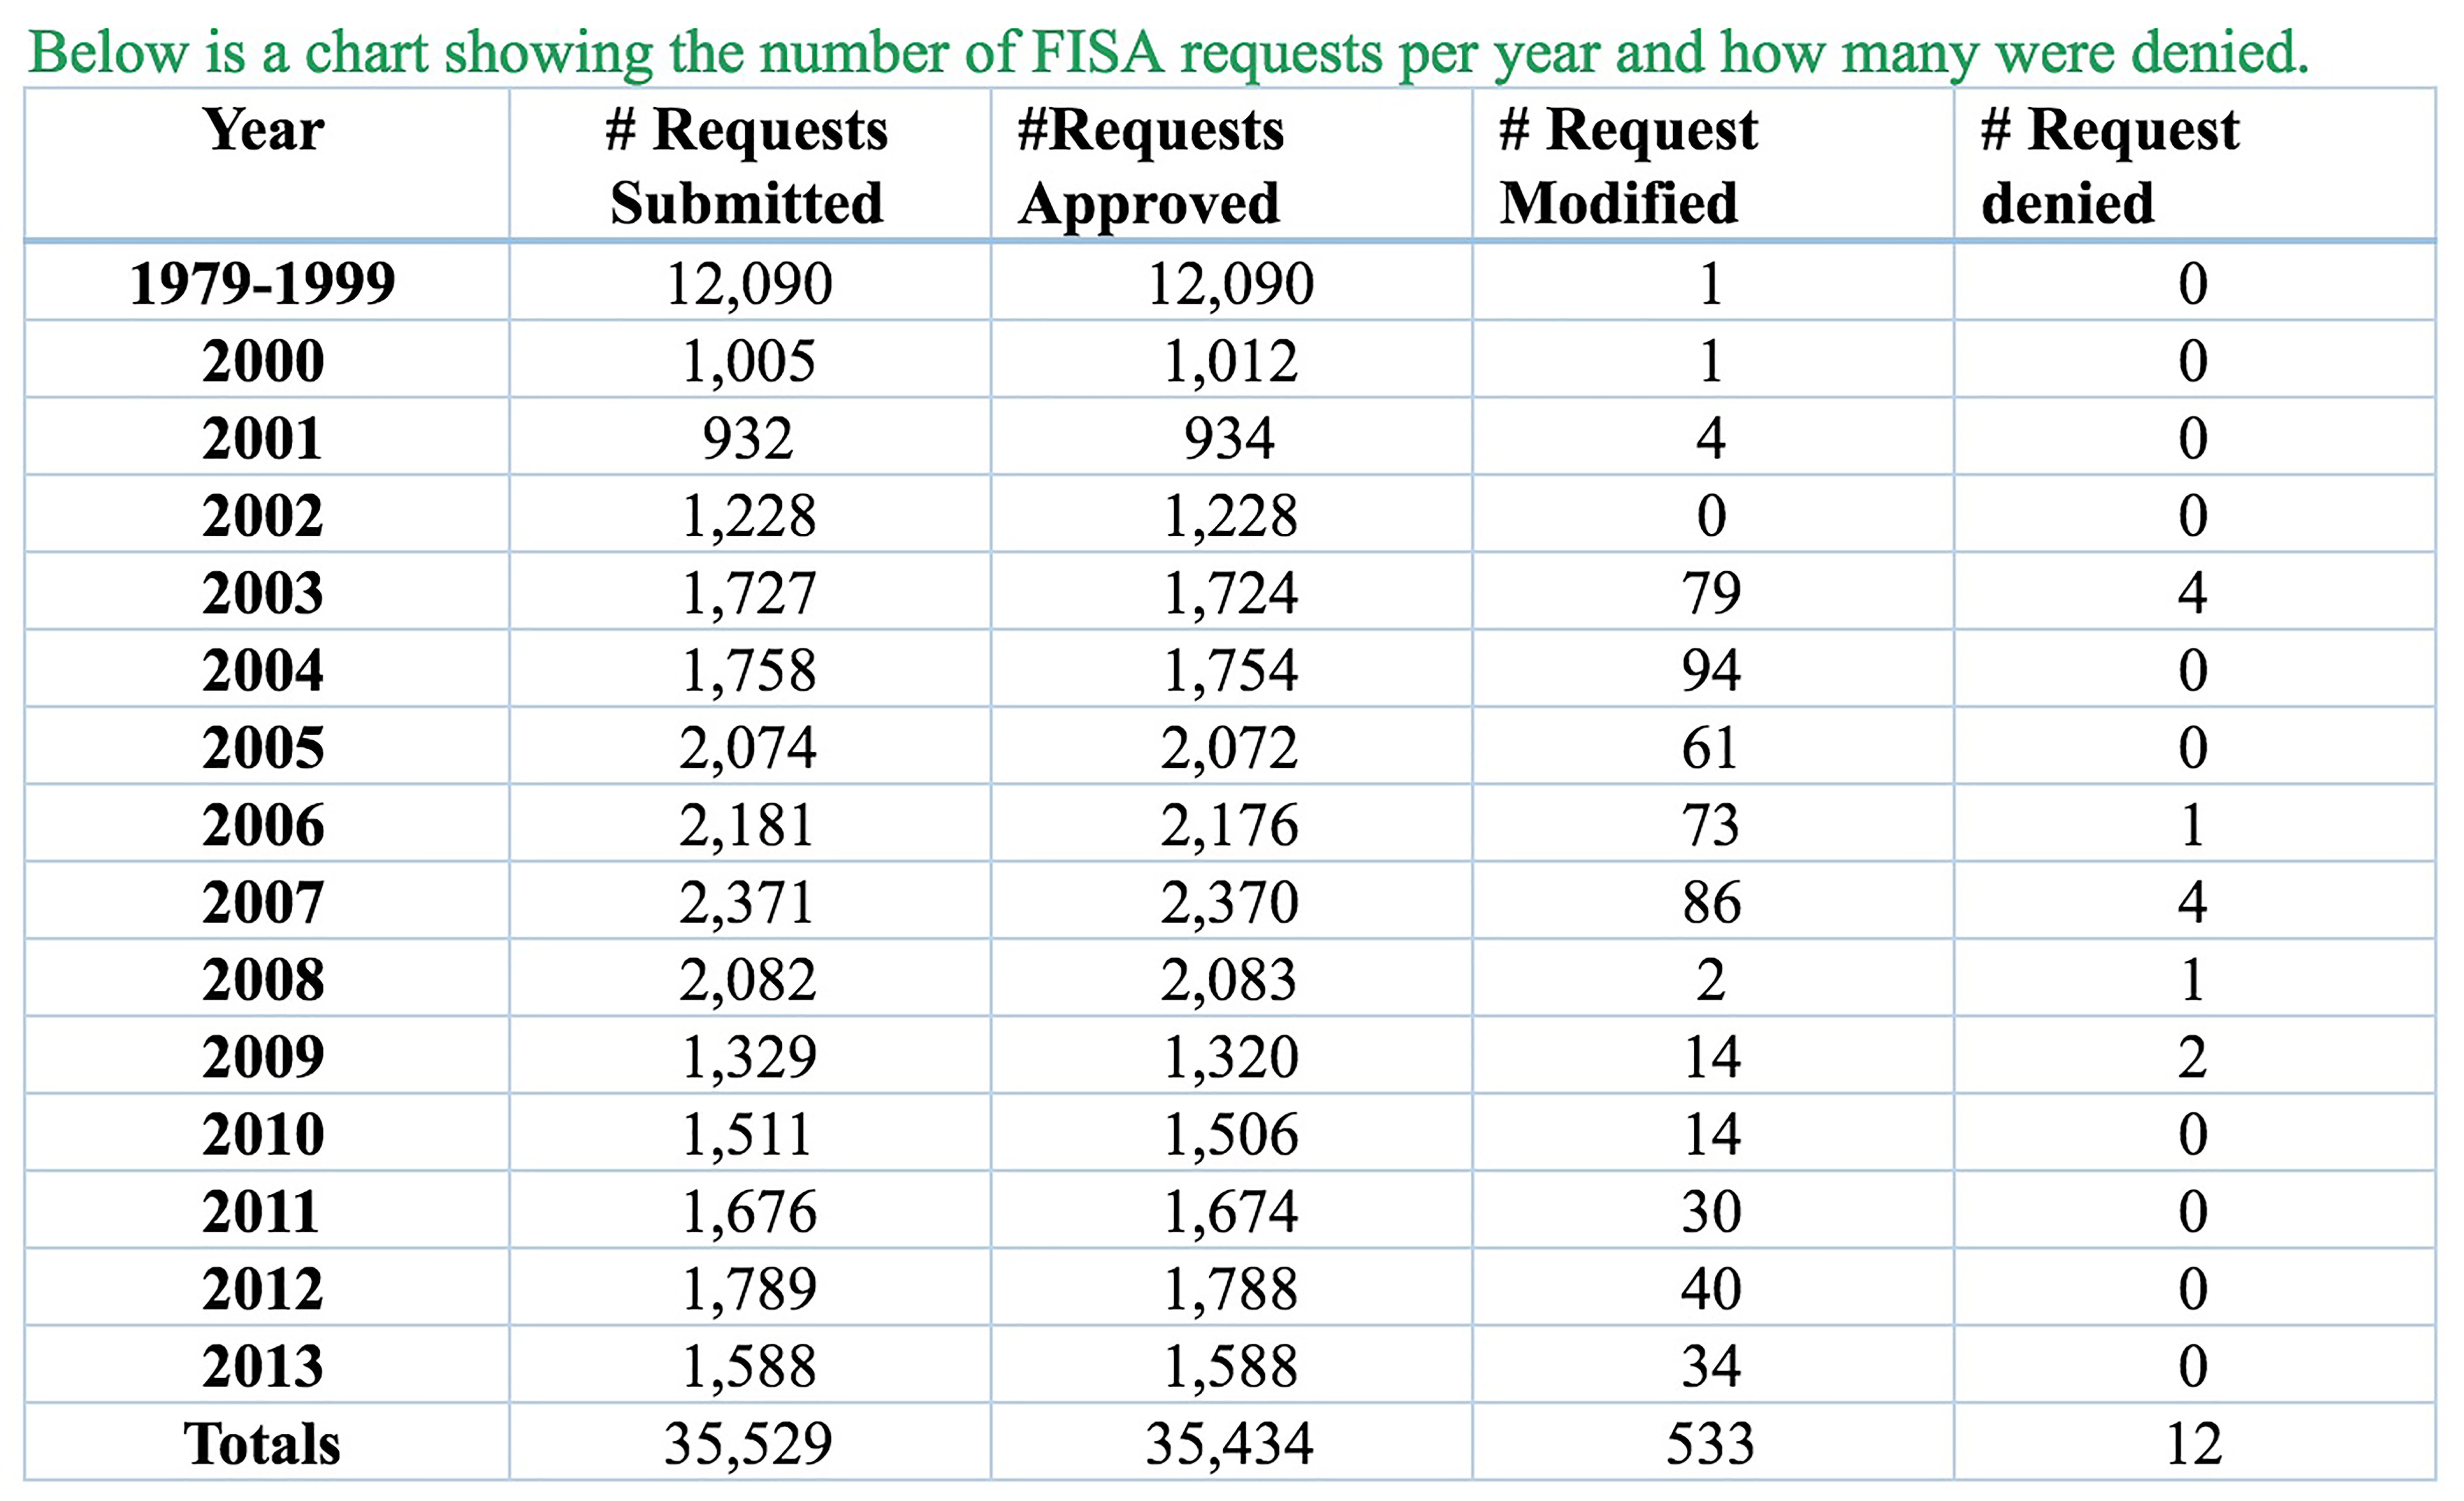 A chart showing the number of FISA requests per year and how many were denied